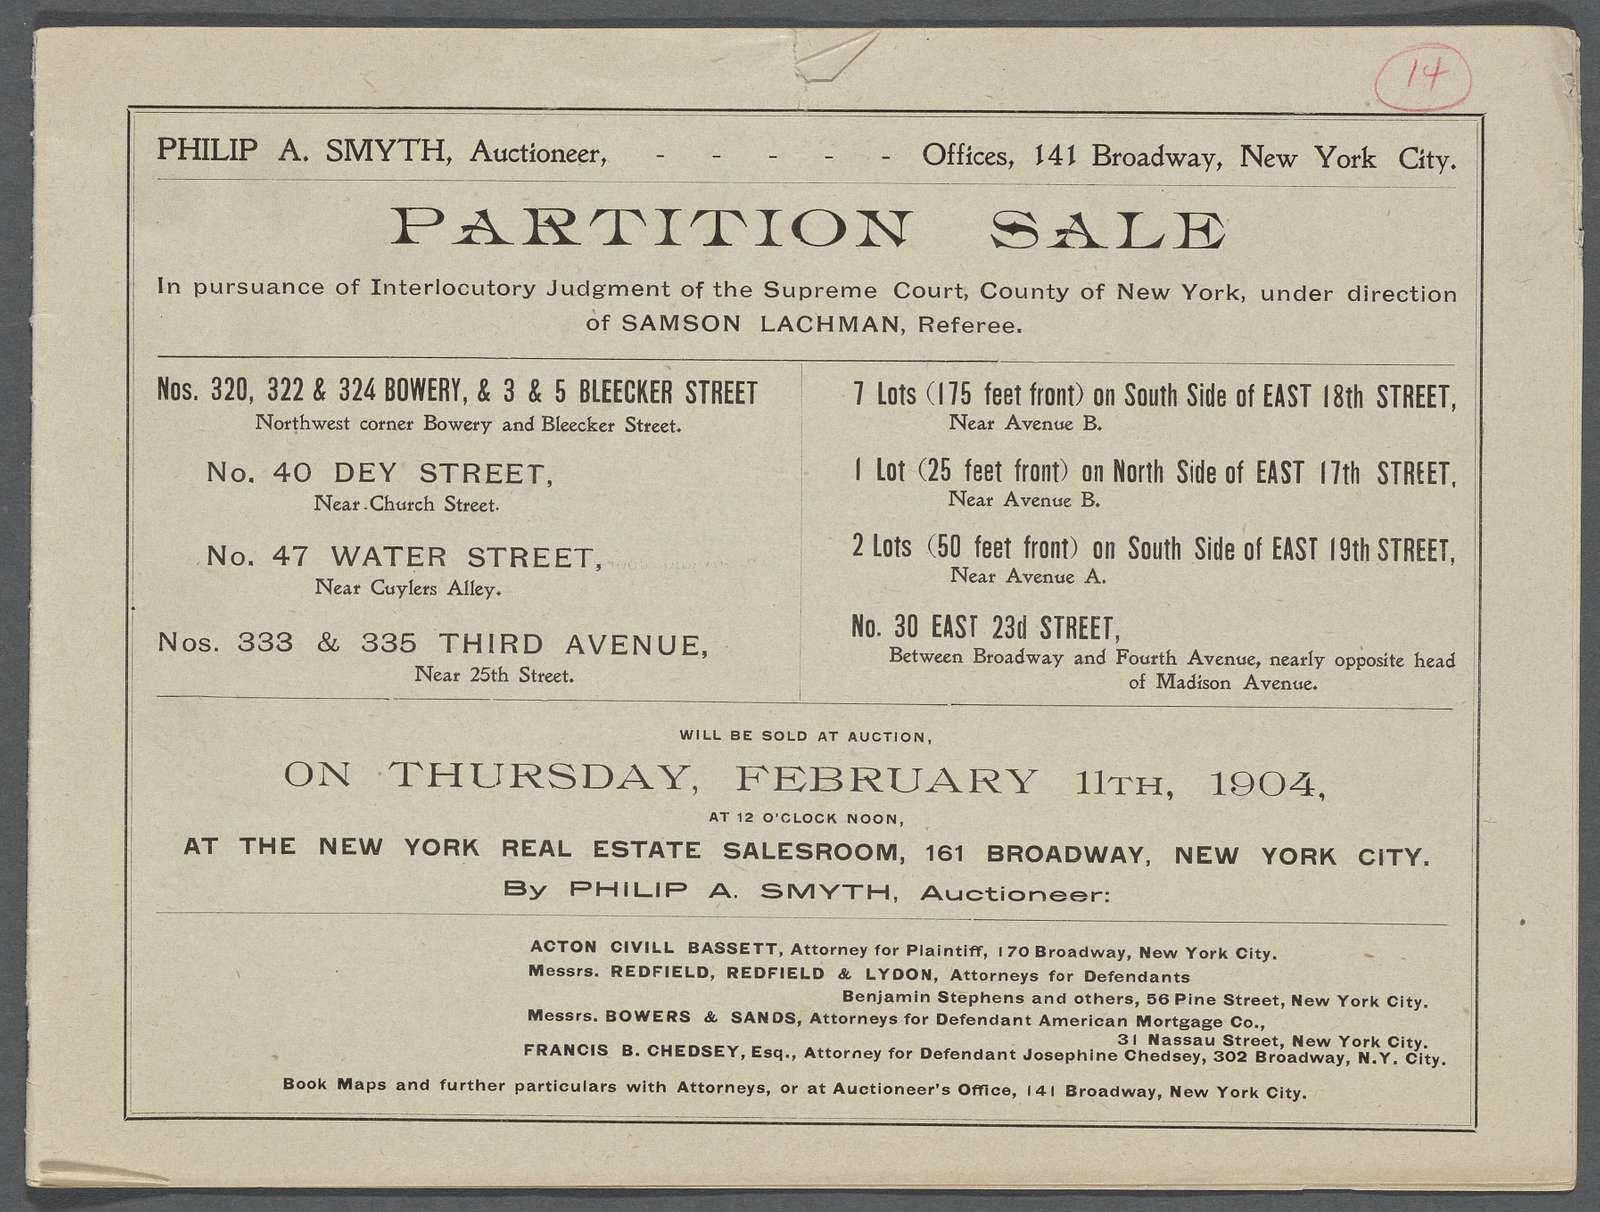 Partition Sale in pursuance of Interlocutory Judgment of the Supreme Court, County of New York, under direction of Samson Lachman Referee